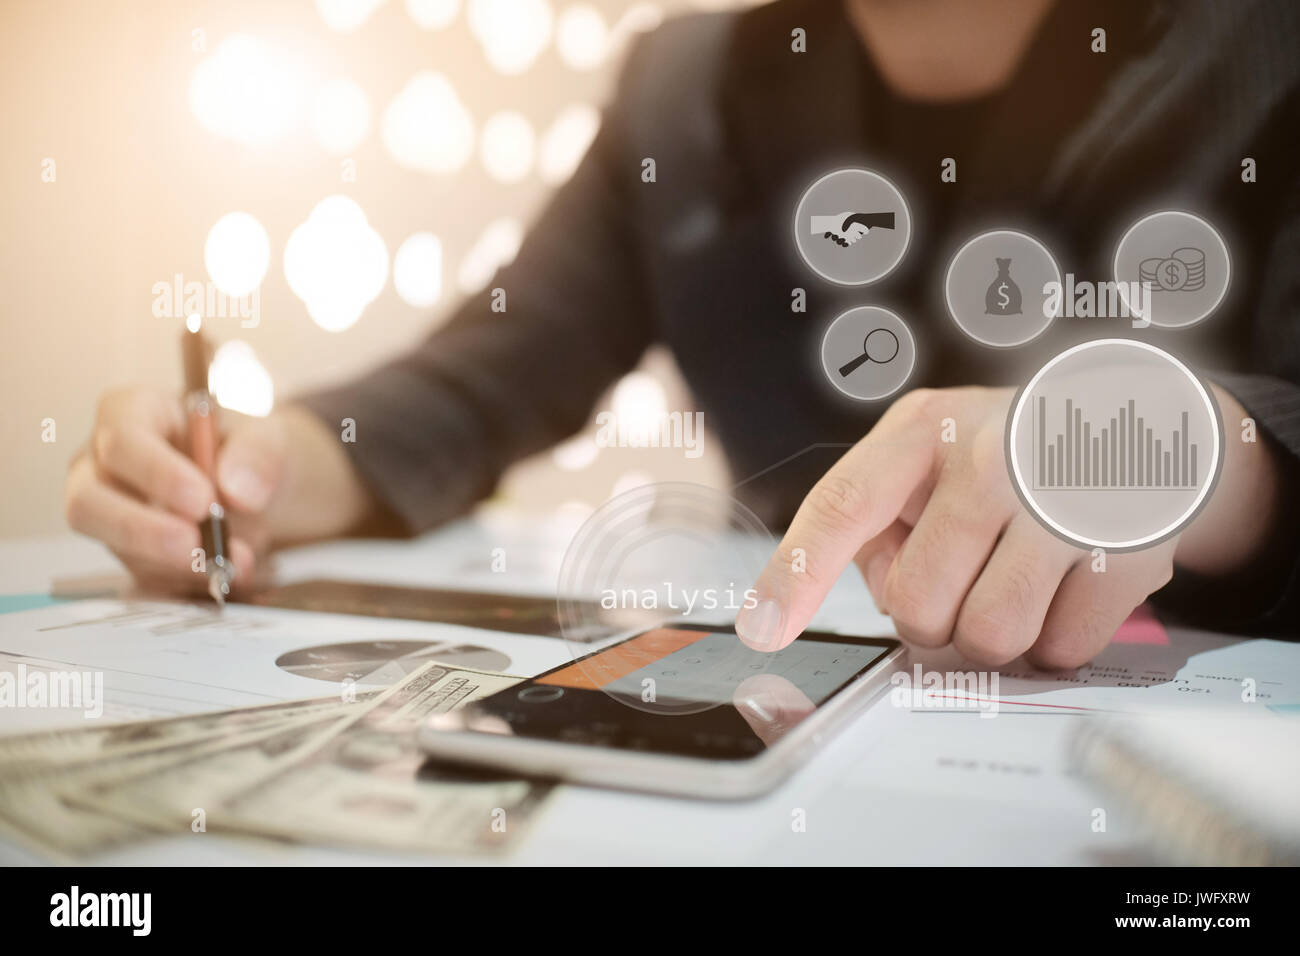 Business man calculateFinancial Planning Report in Spreadsheet .Internal revenue Service inspector checking financial document vintage tone. - Stock Image